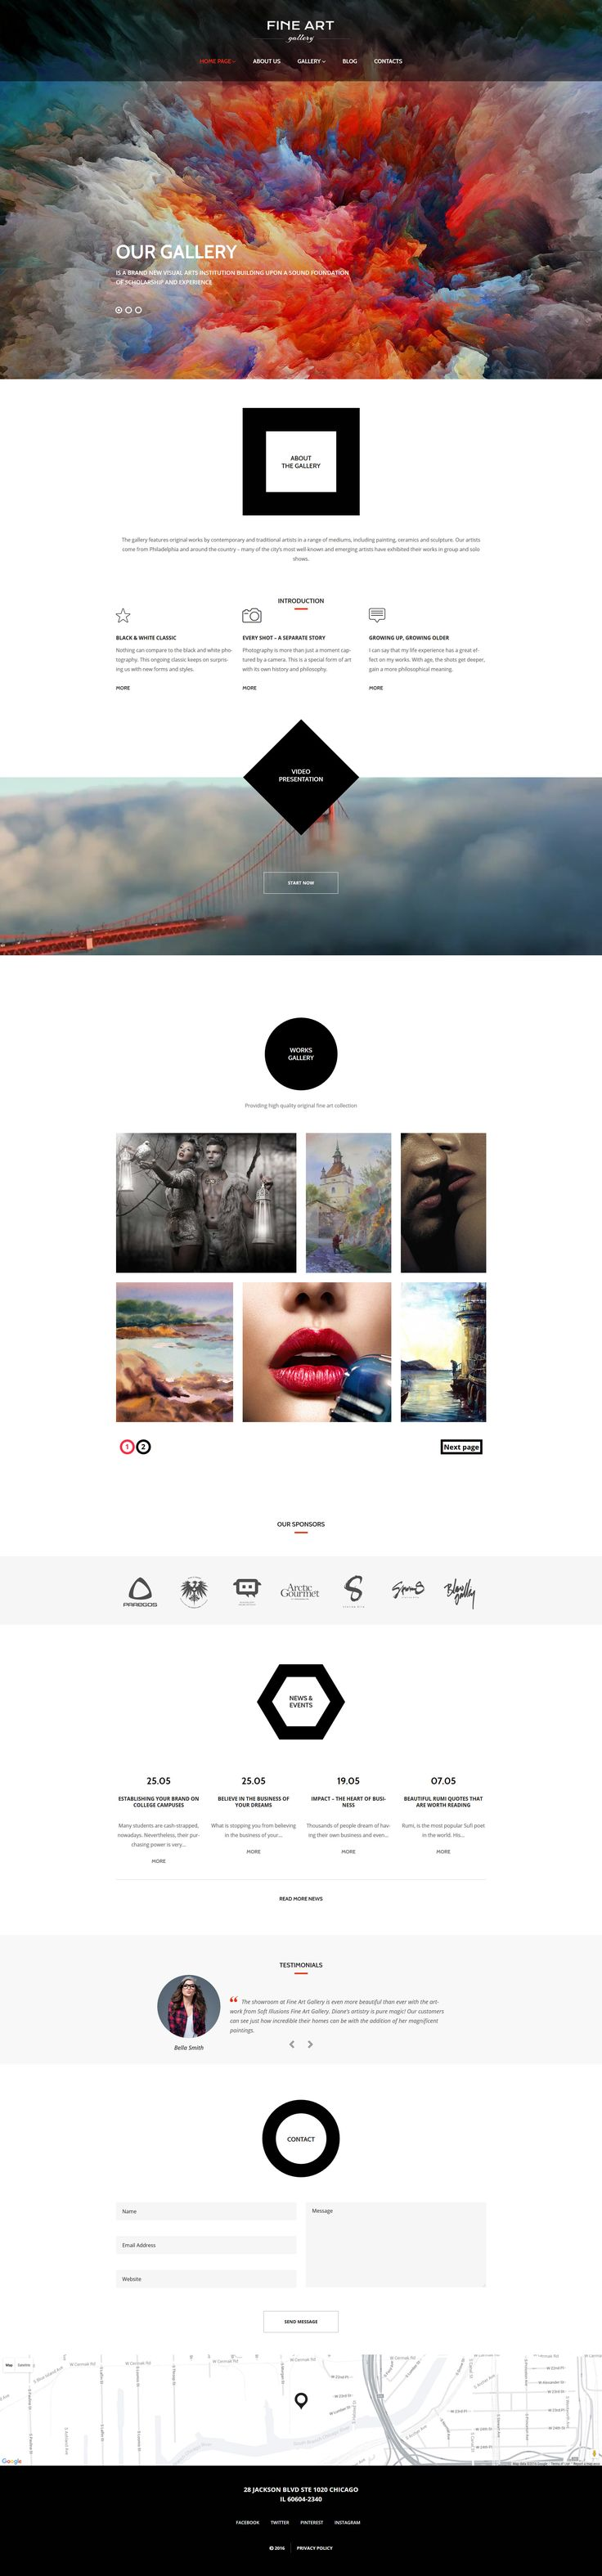 Art Gallery Responsive WordPress Theme #56092